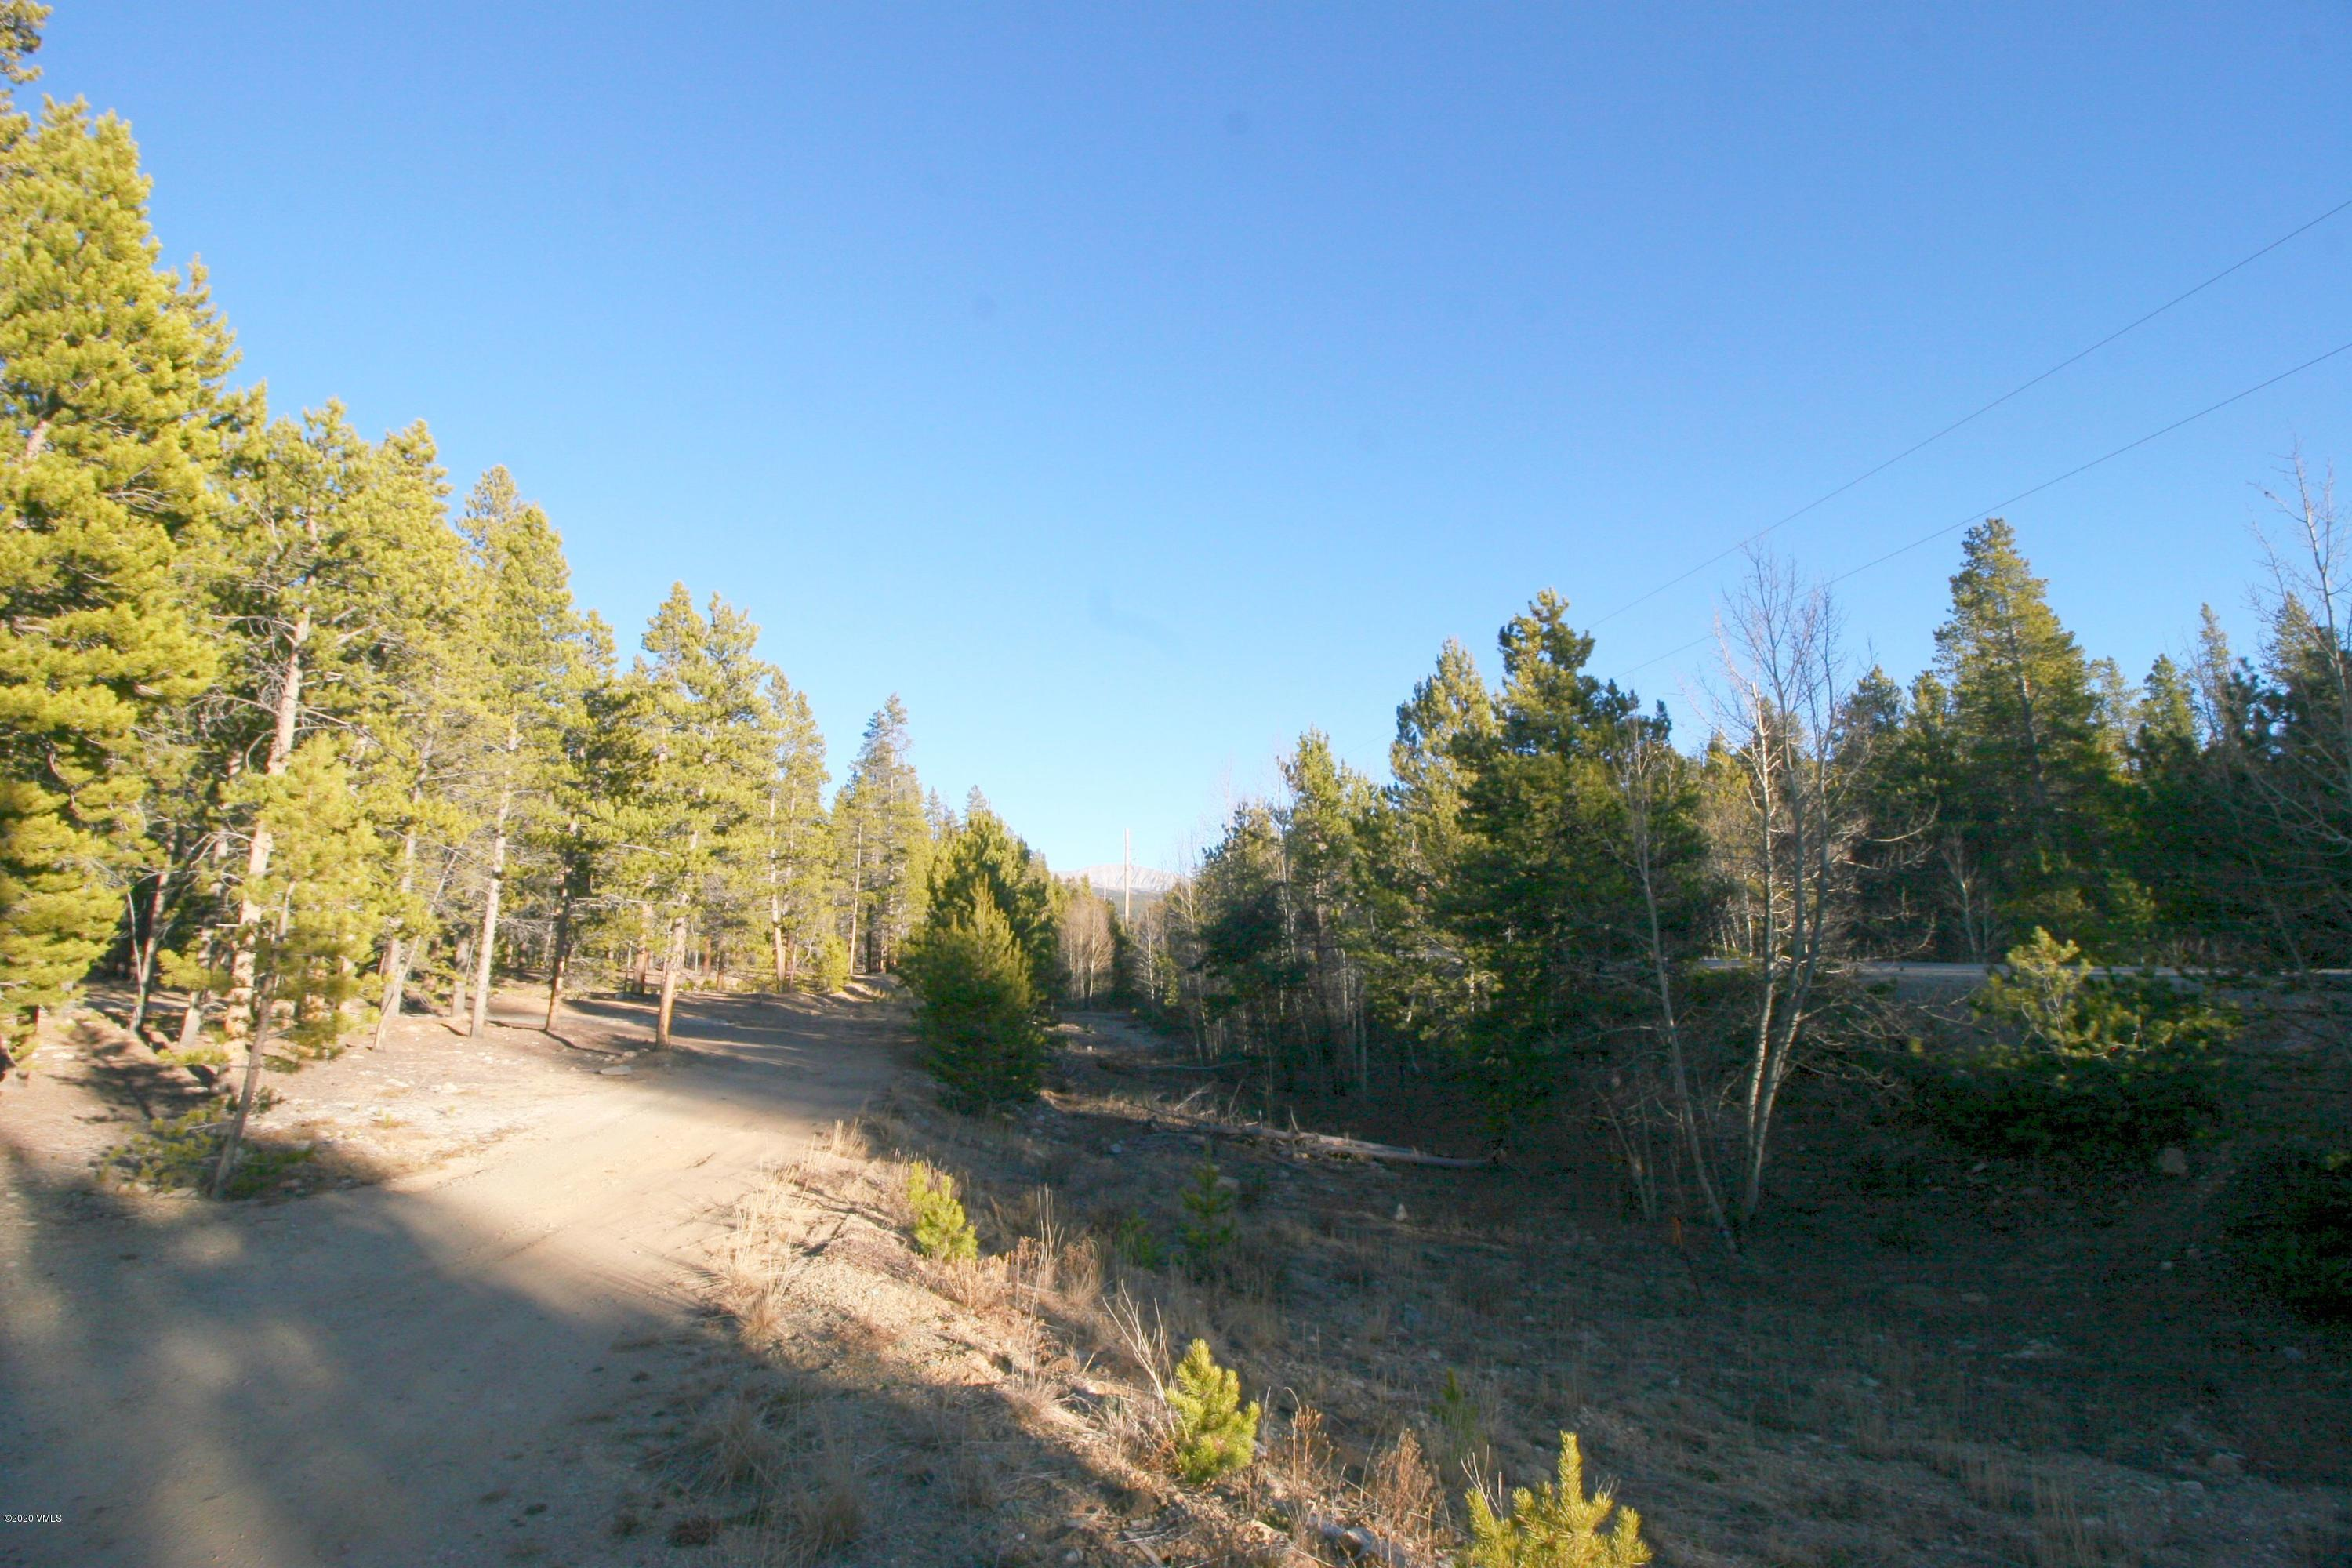 1099 County Road 4, Leadville, CO 80461 Property Photo - Leadville, CO real estate listing